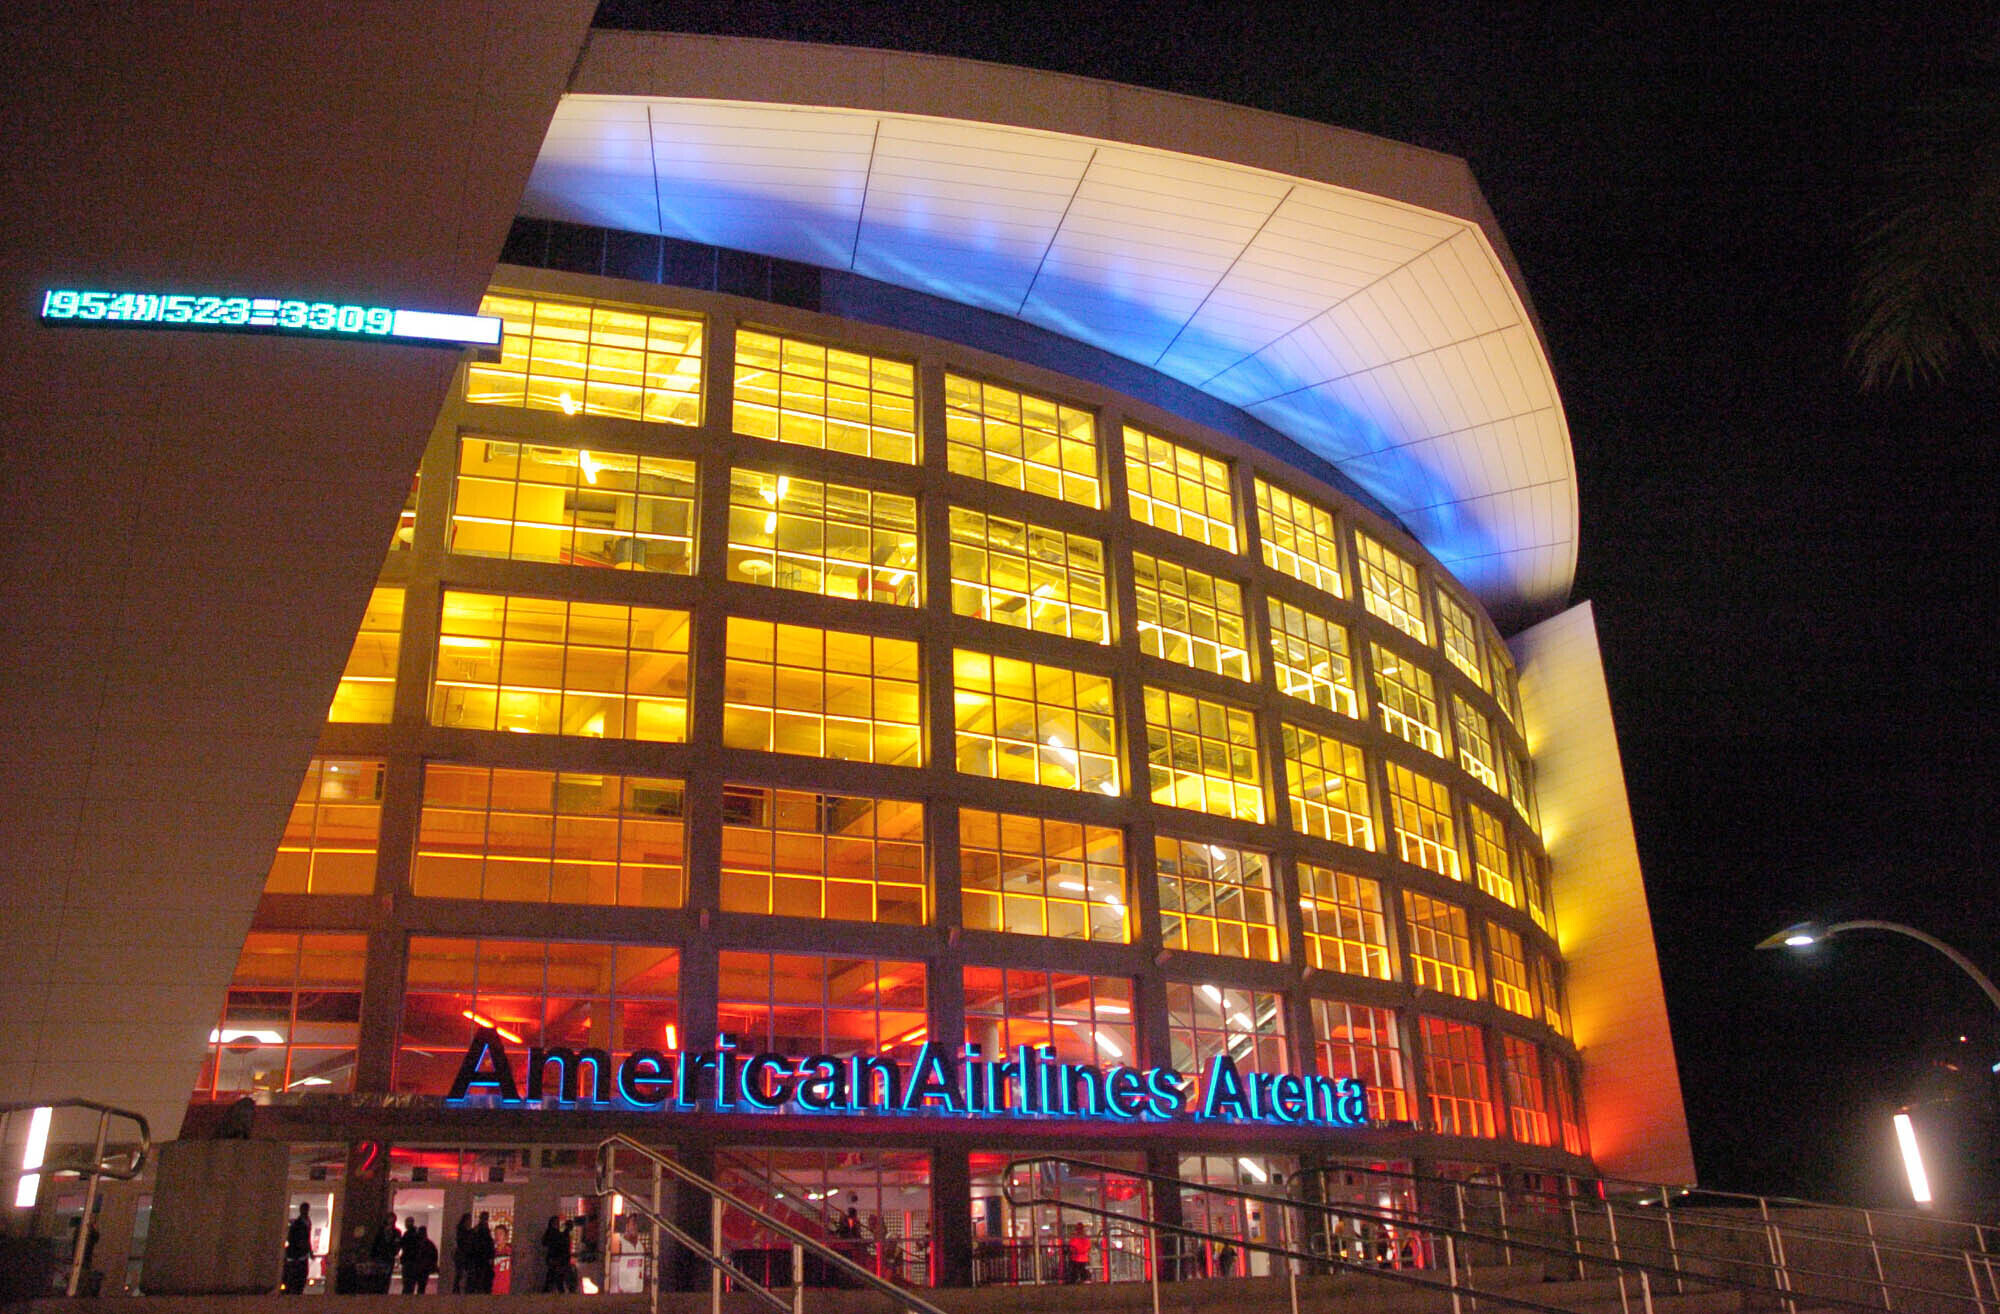 This is March 11, 2005, file photo showing the American Airlines Arena in Miami.